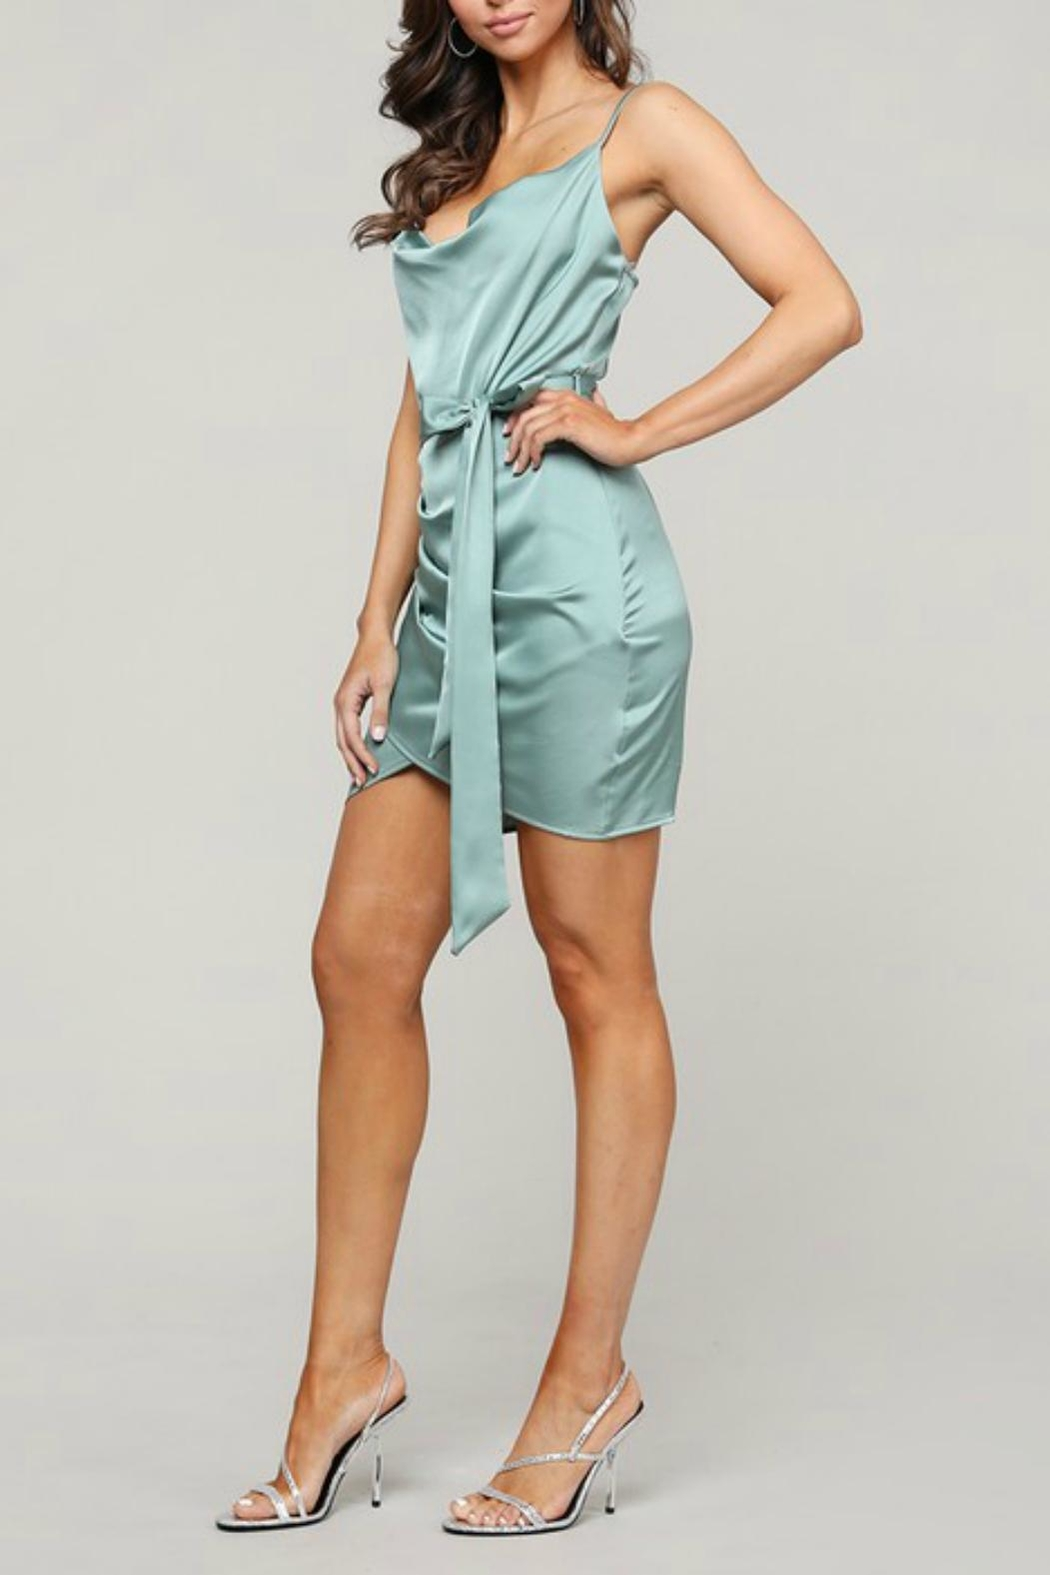 Pretty Little Things Satin Wrap Dress - Front Full Image